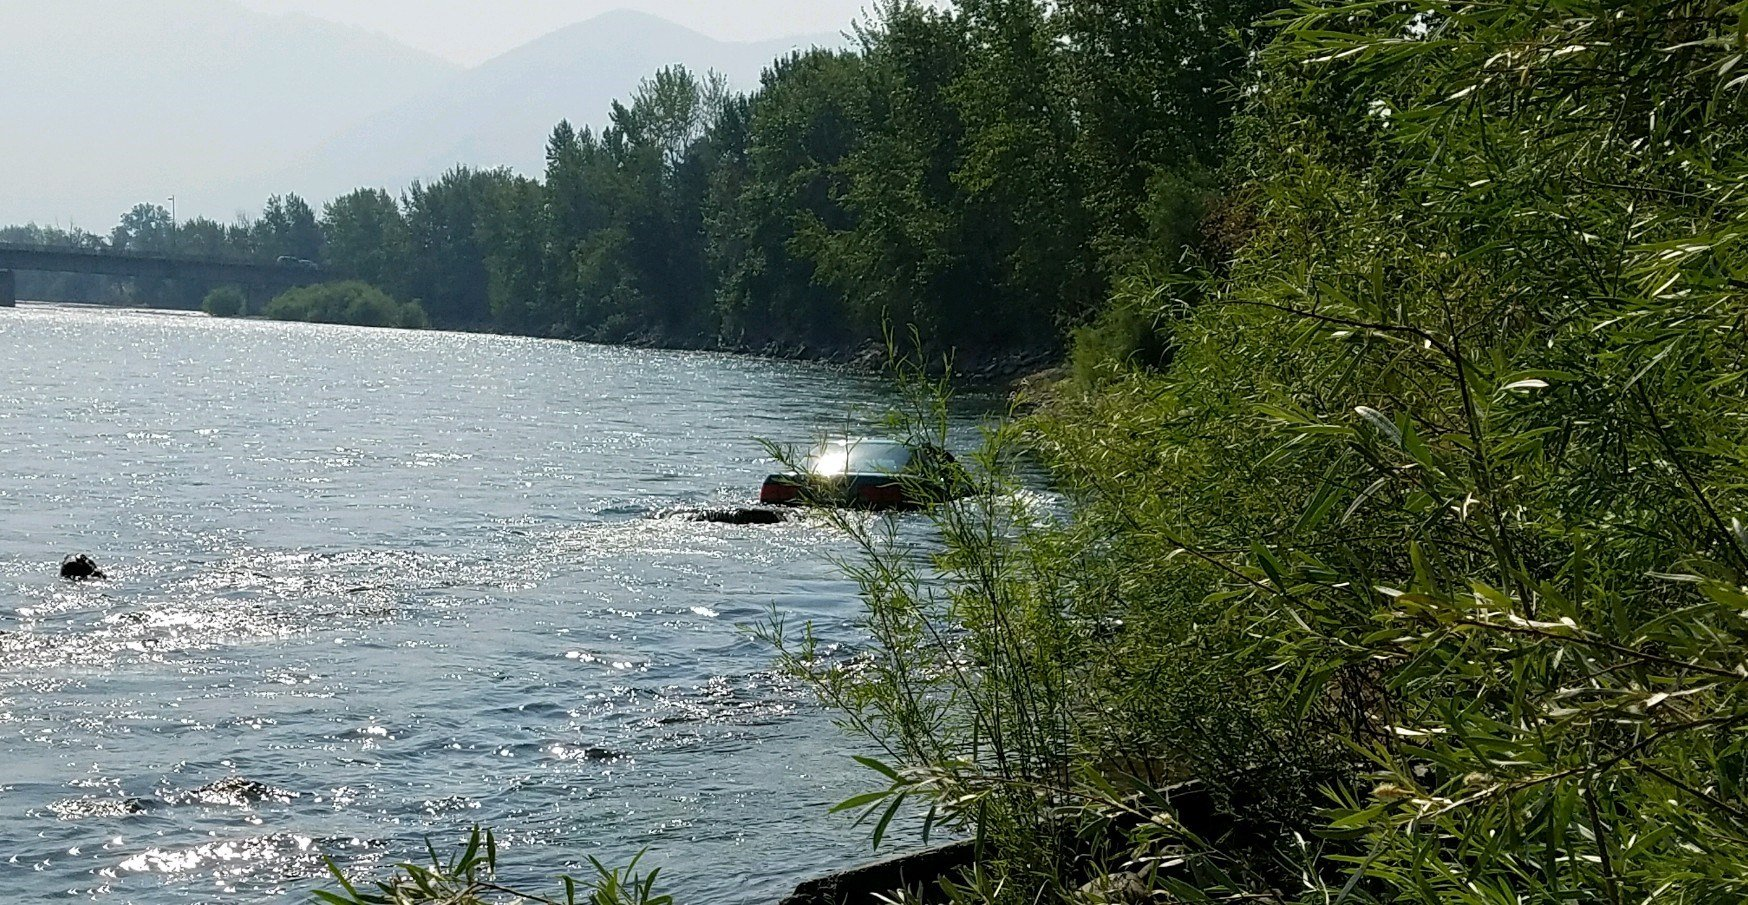 The pursuit ended with a vehicle in the Clark Fork River. (MTN News/Russ Thomas photo)